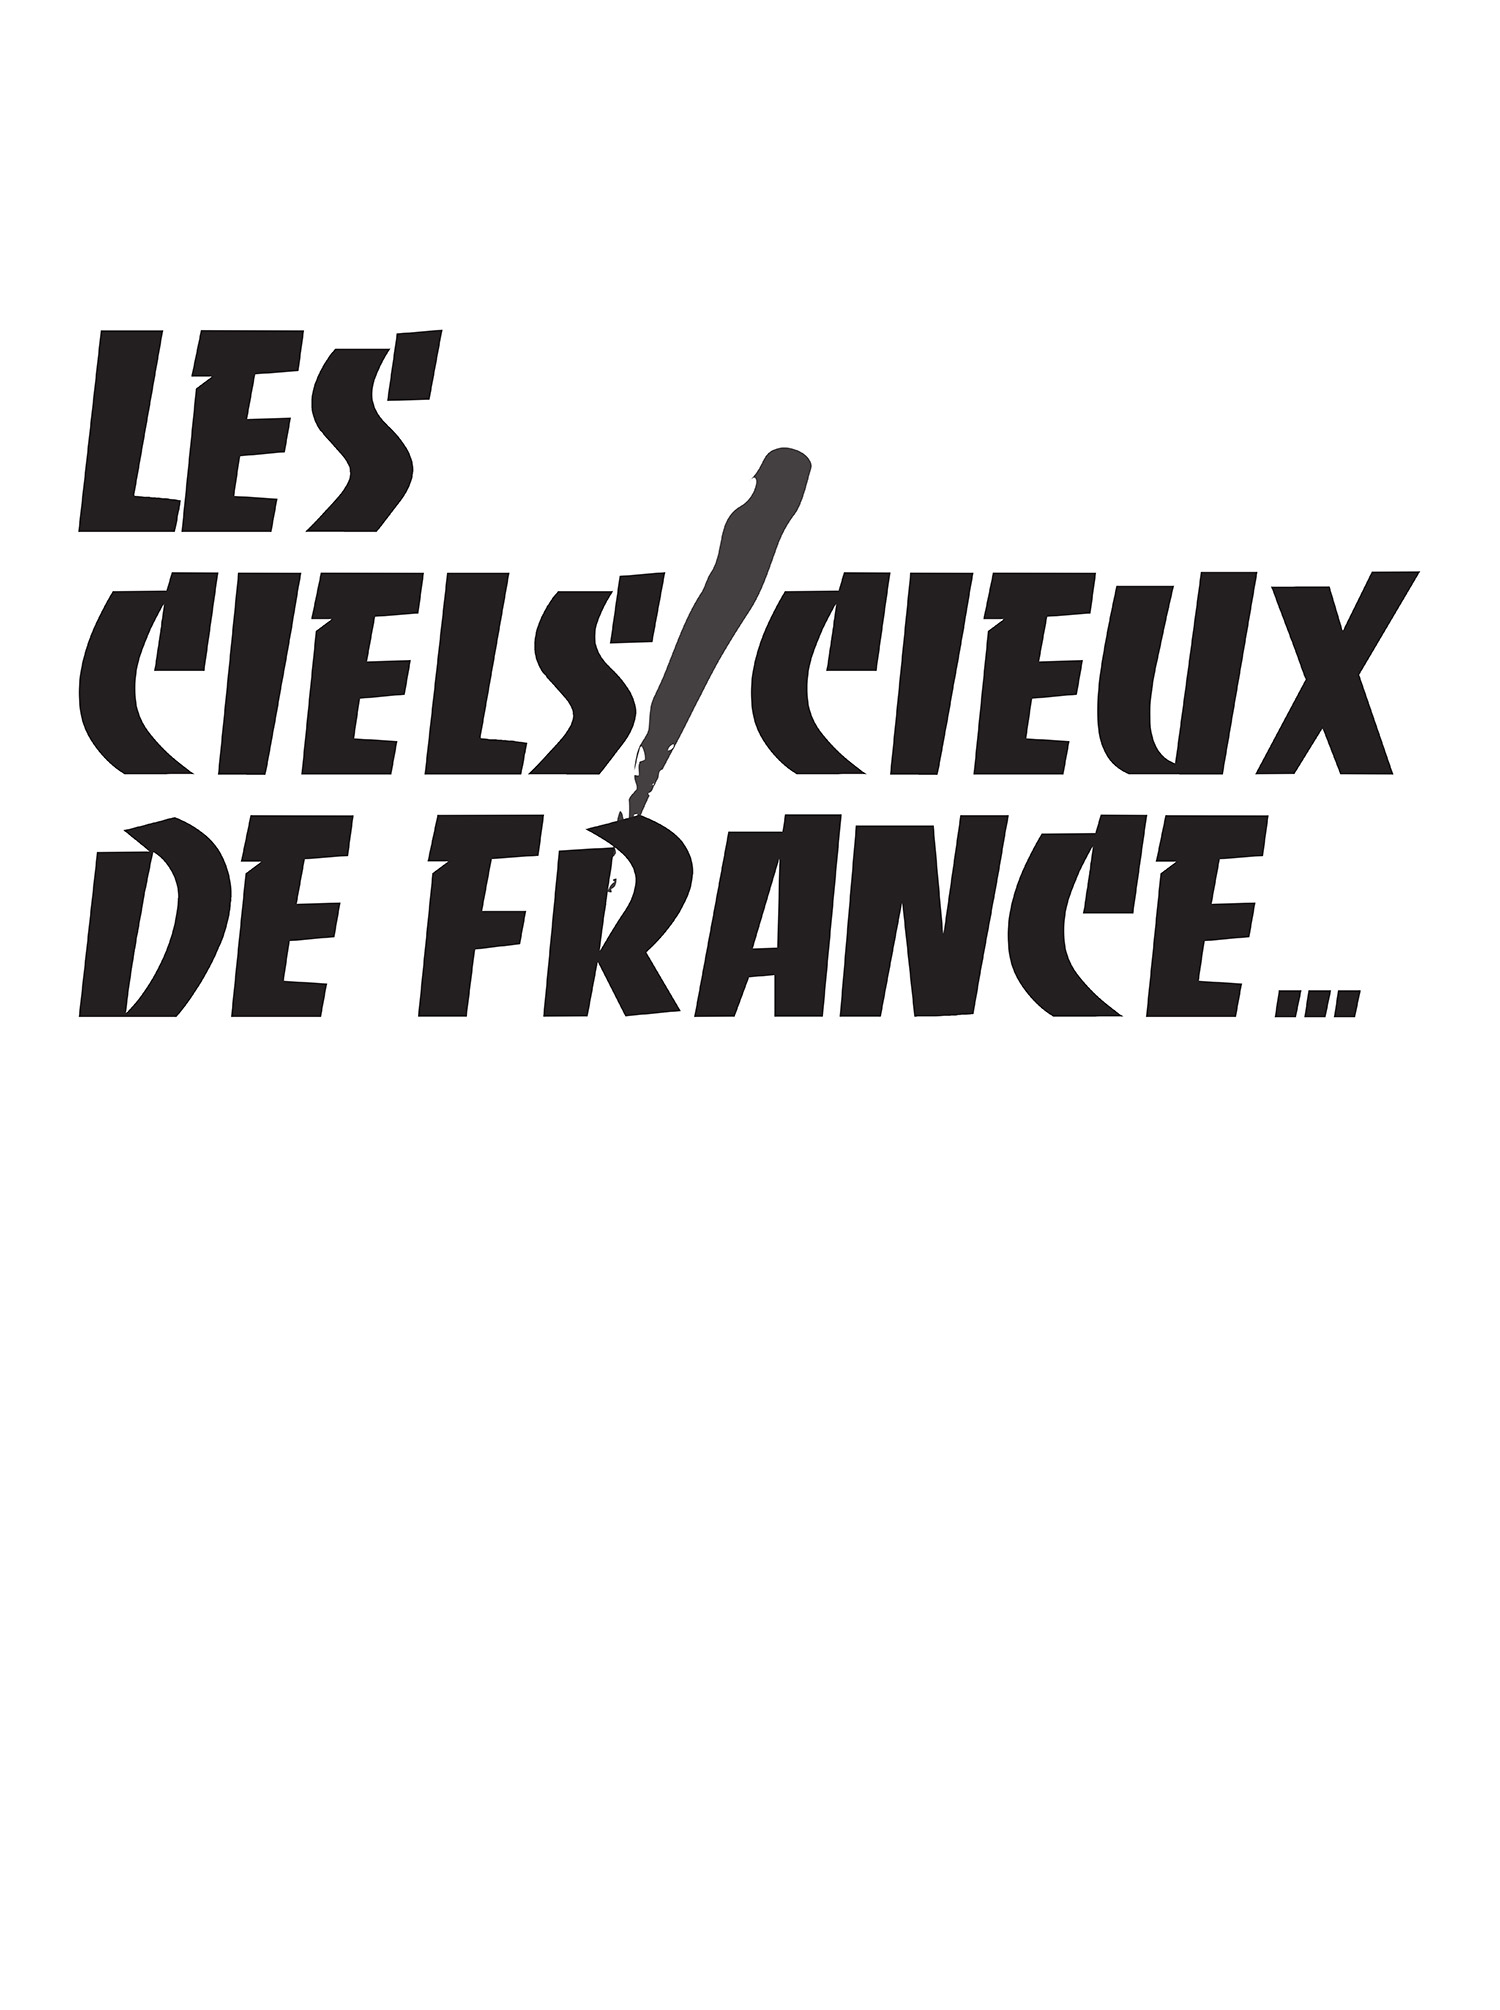 Liam Gillick,  Les Ciels/Cieux de  France, 2010  Gillick's poster relates to Excoffon's work as creative director for Air France. Yet Gillick use of language highlights the dual meaning of 'Ciel' in French as referring to sky or heaven. This lends the work to carry a utopian spirit.